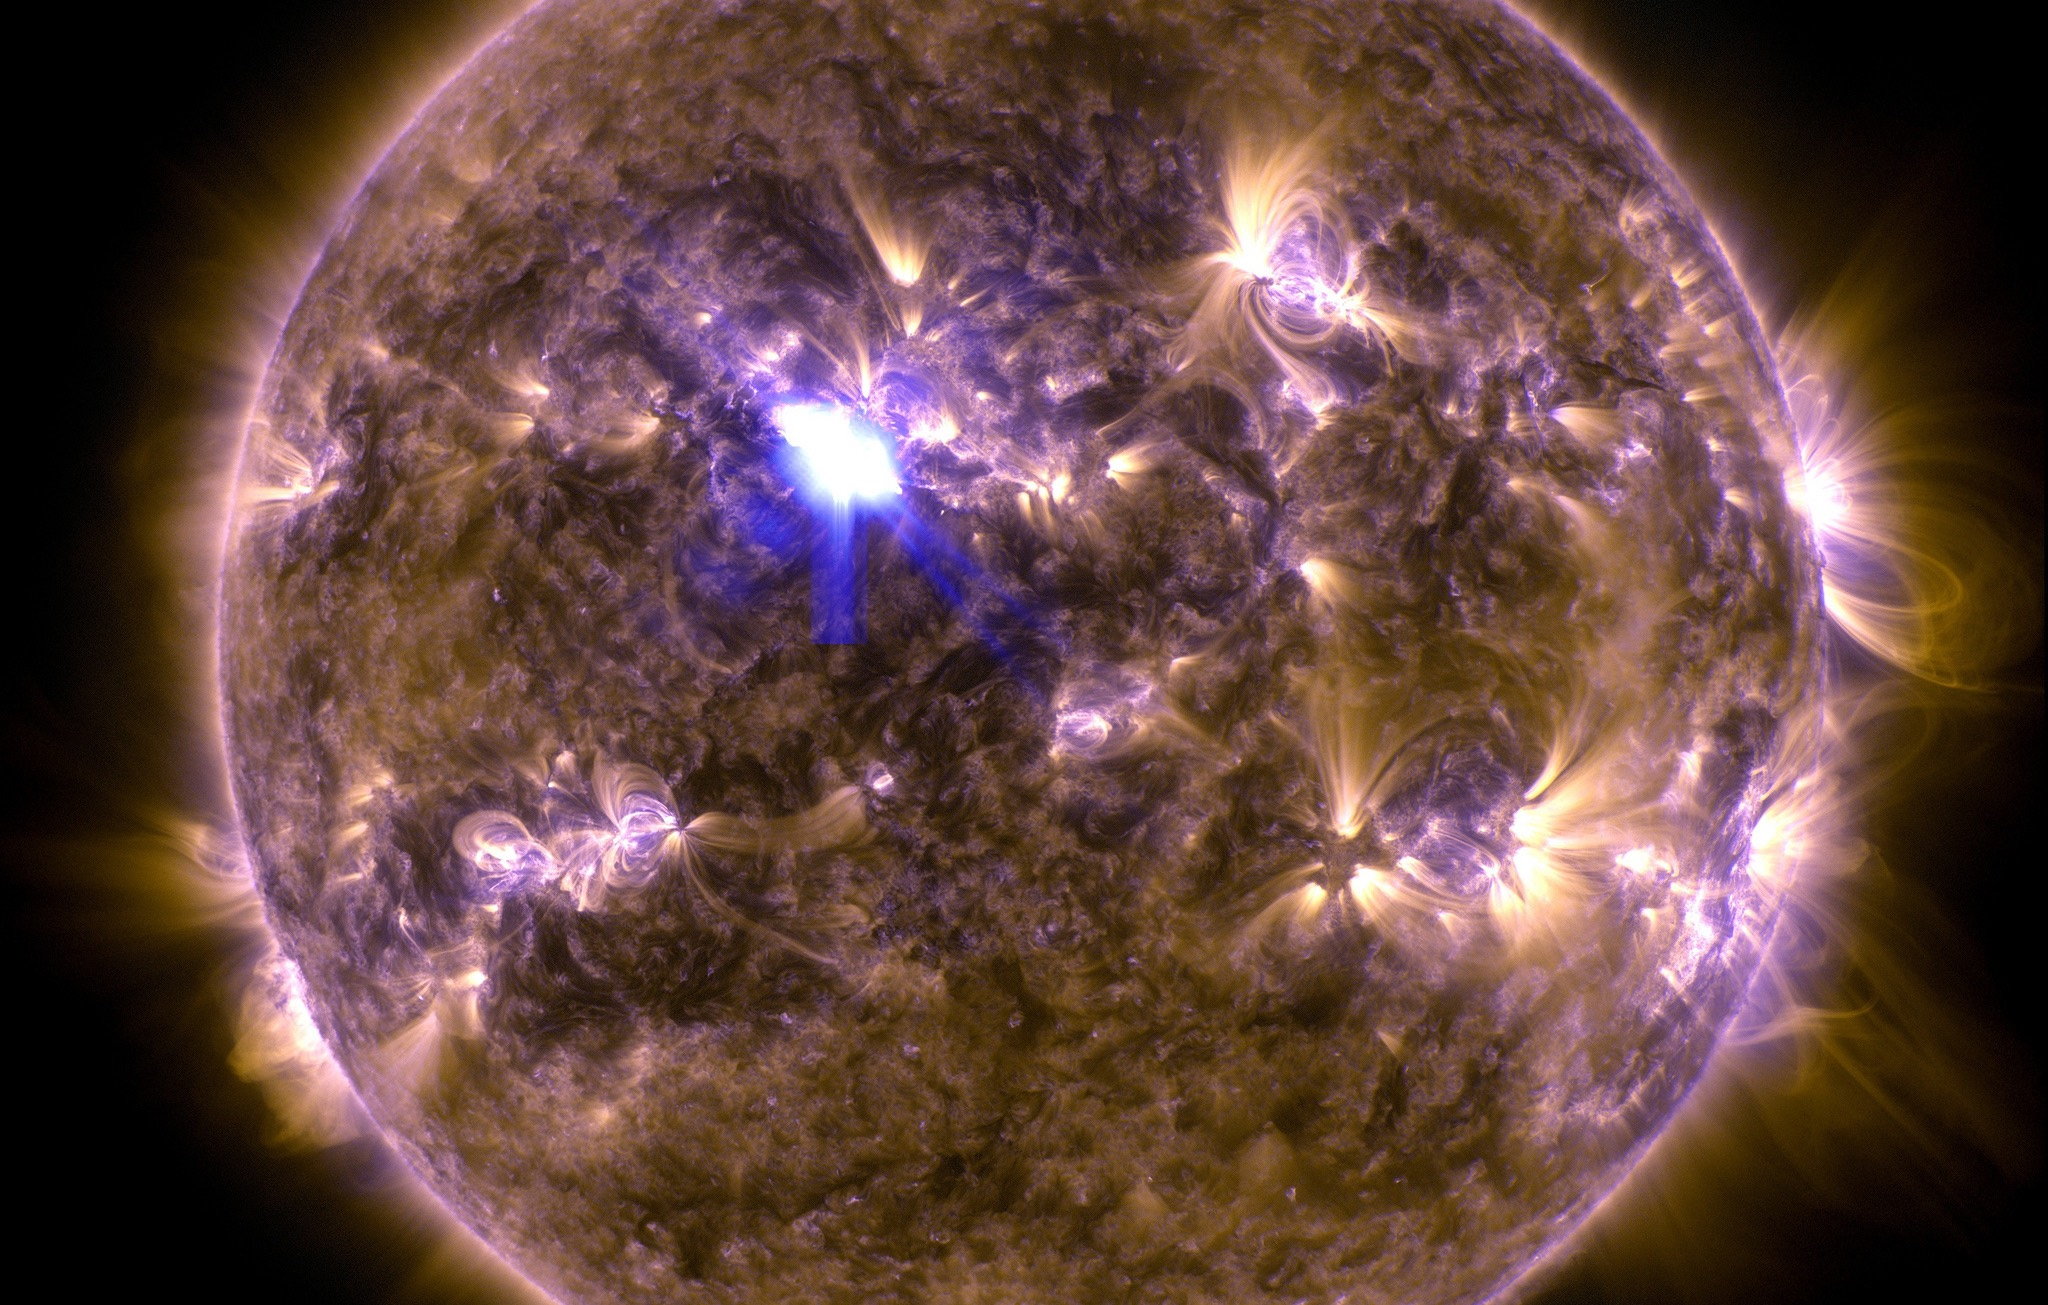 The Sun lets loose a solar flare of magnitude M6.5 on April 11, 2013. Scientists have implicated intense magnetic fields in the production of such flares. Credit: gsfc/Flickr, CC BY 2.0